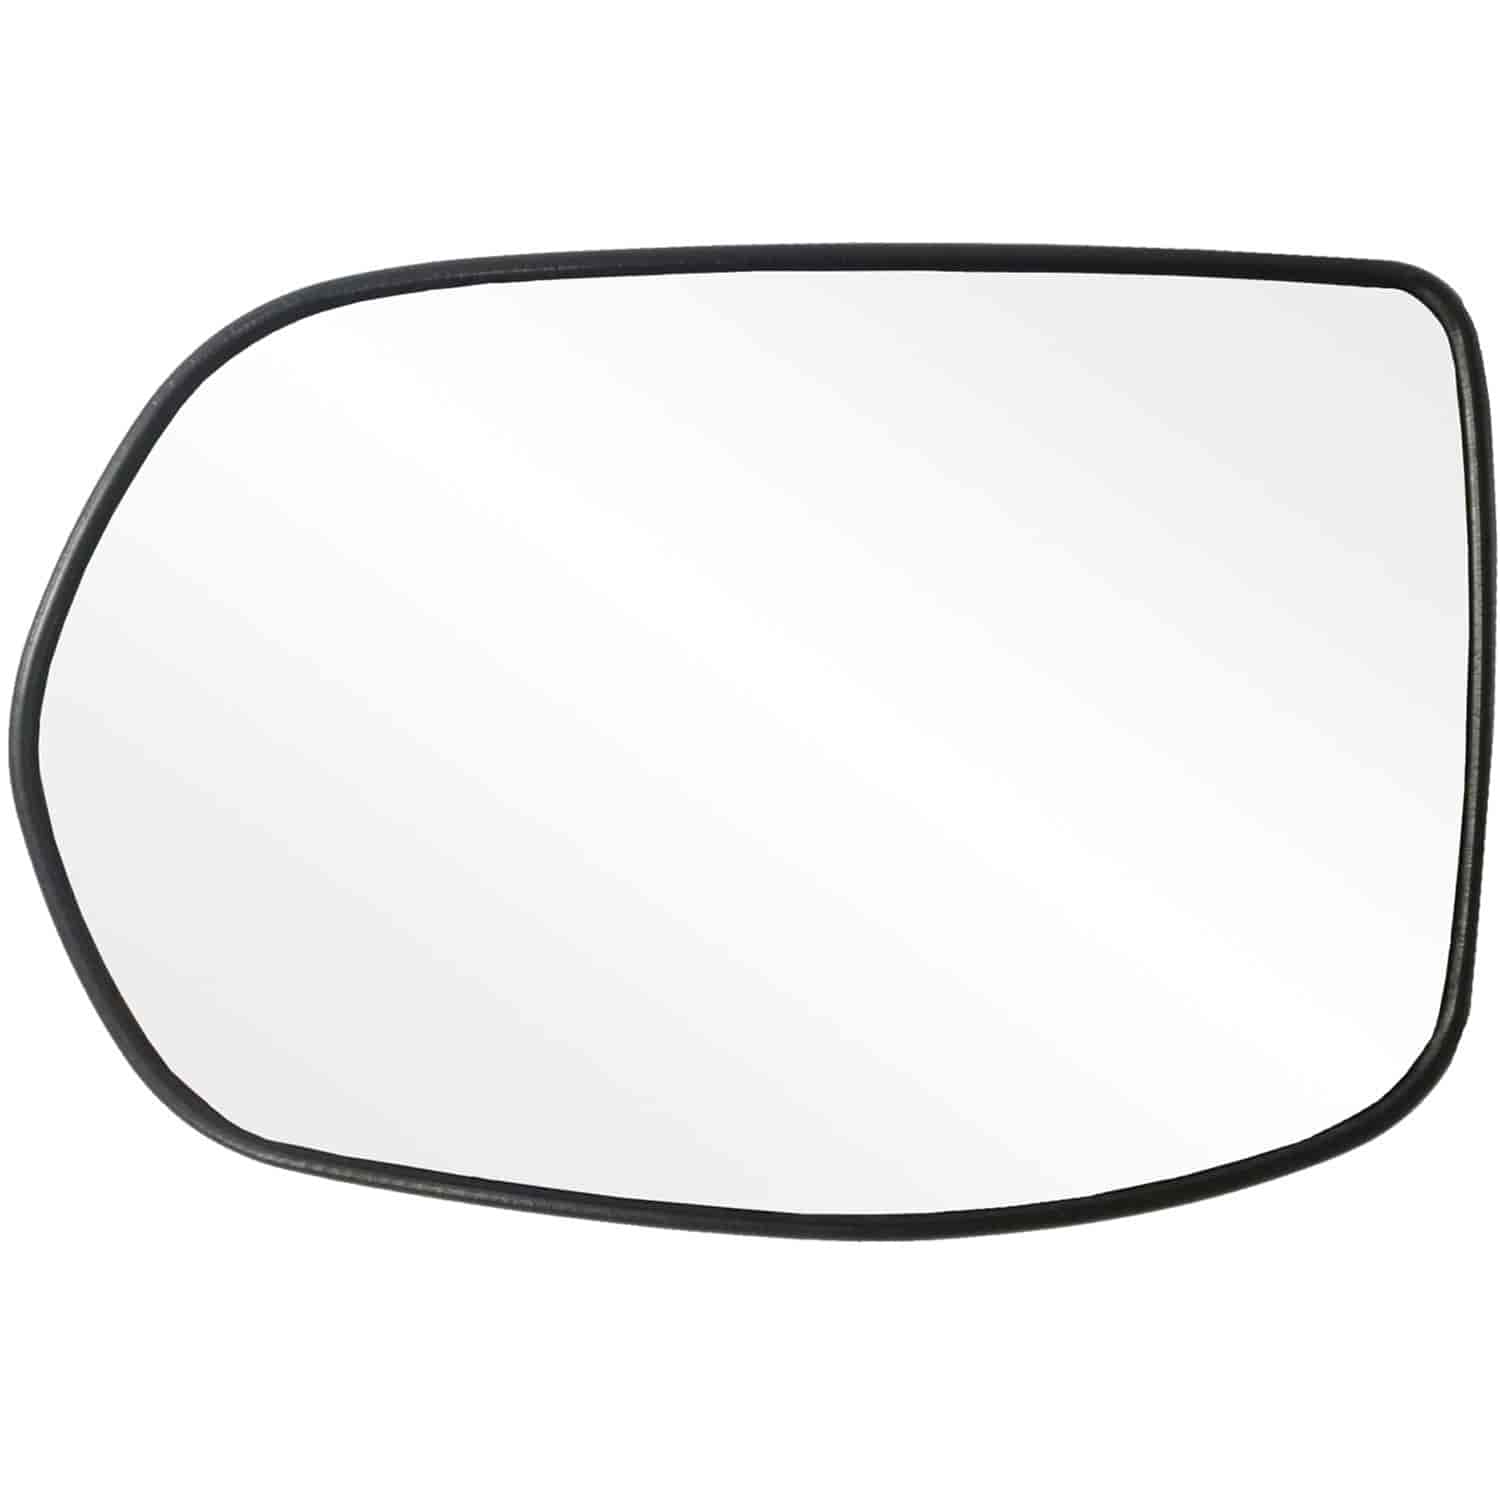 K Source Replacement Glass Assembly For 07 11 Cr V Replace Your Cracked Or Broken Driver Side Mirror Glass At